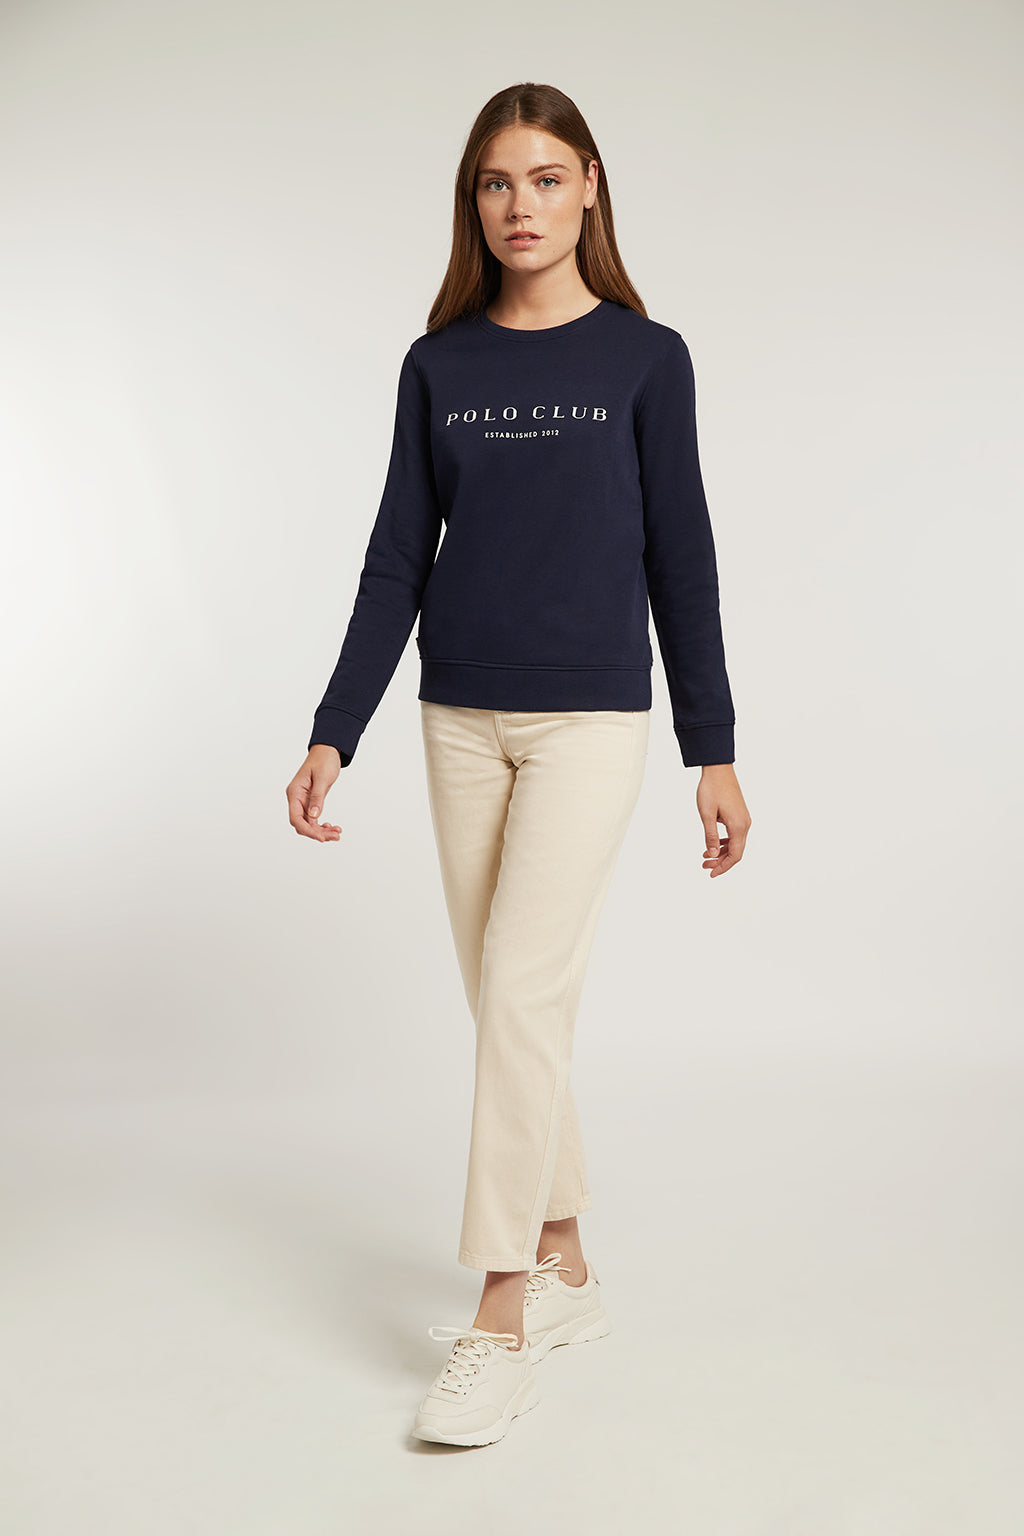 Navy blue organic sweatshirt with front print